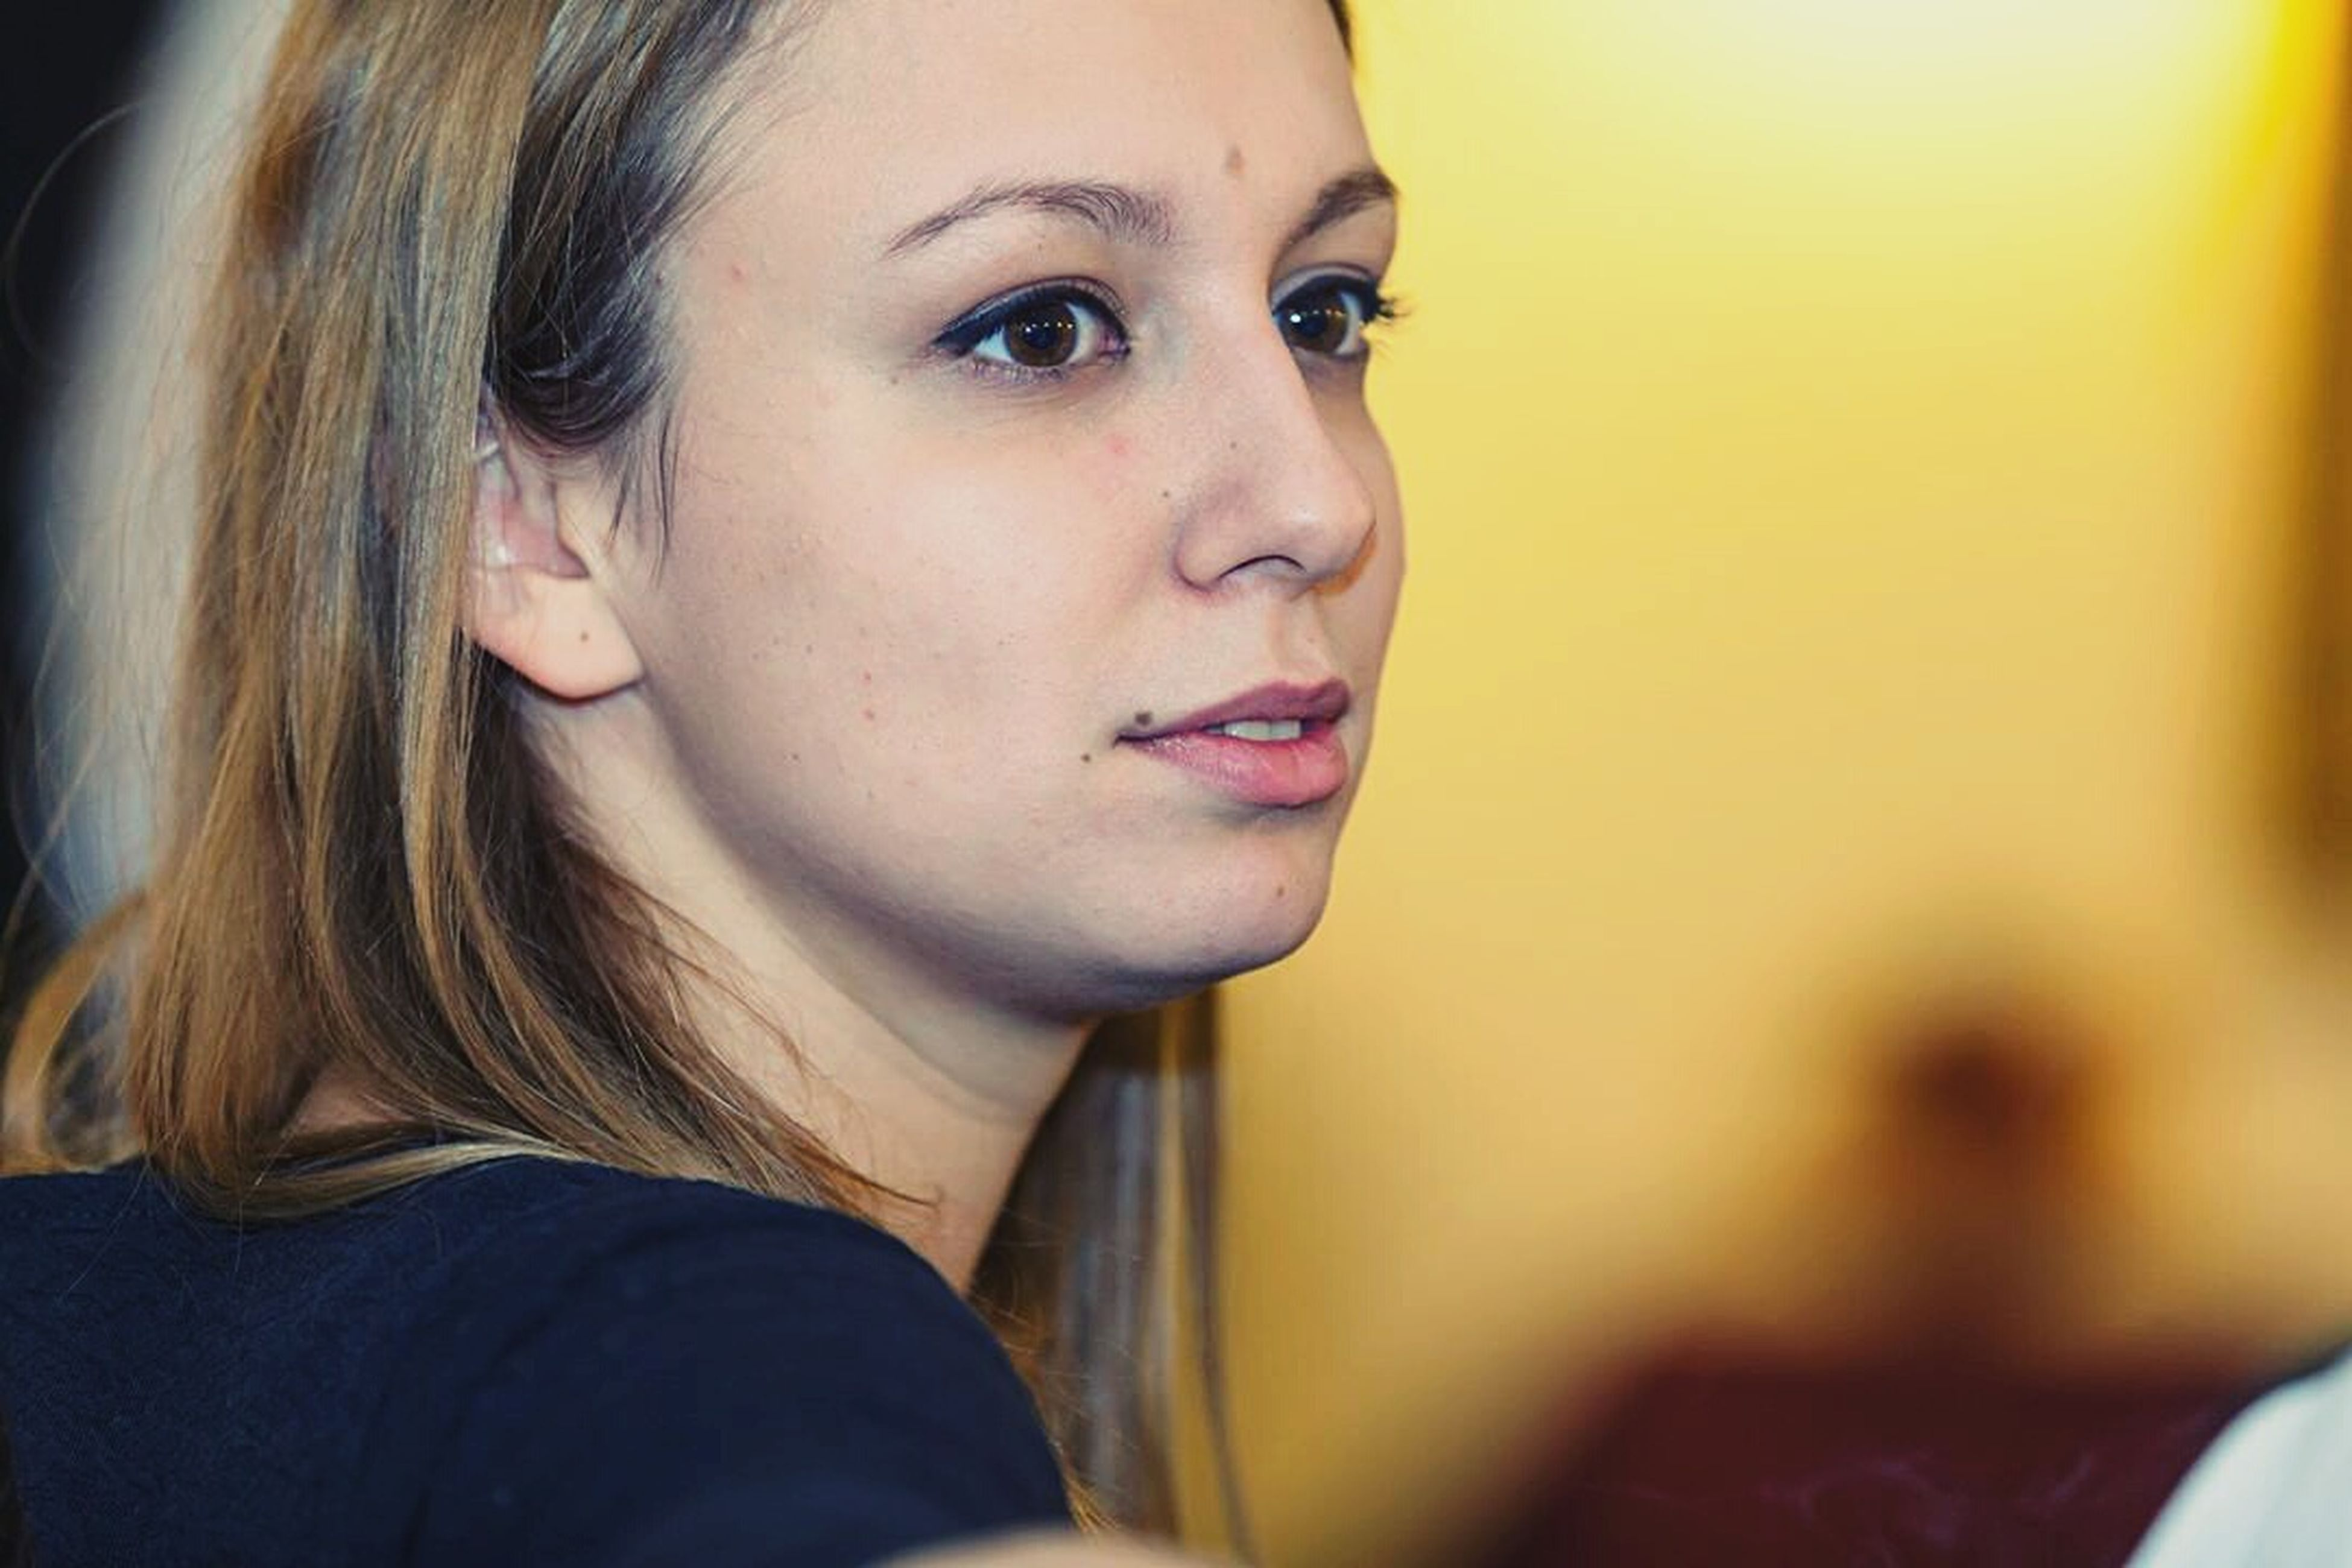 headshot, person, young adult, lifestyles, looking at camera, portrait, young women, close-up, leisure activity, indoors, front view, head and shoulders, focus on foreground, human face, contemplation, long hair